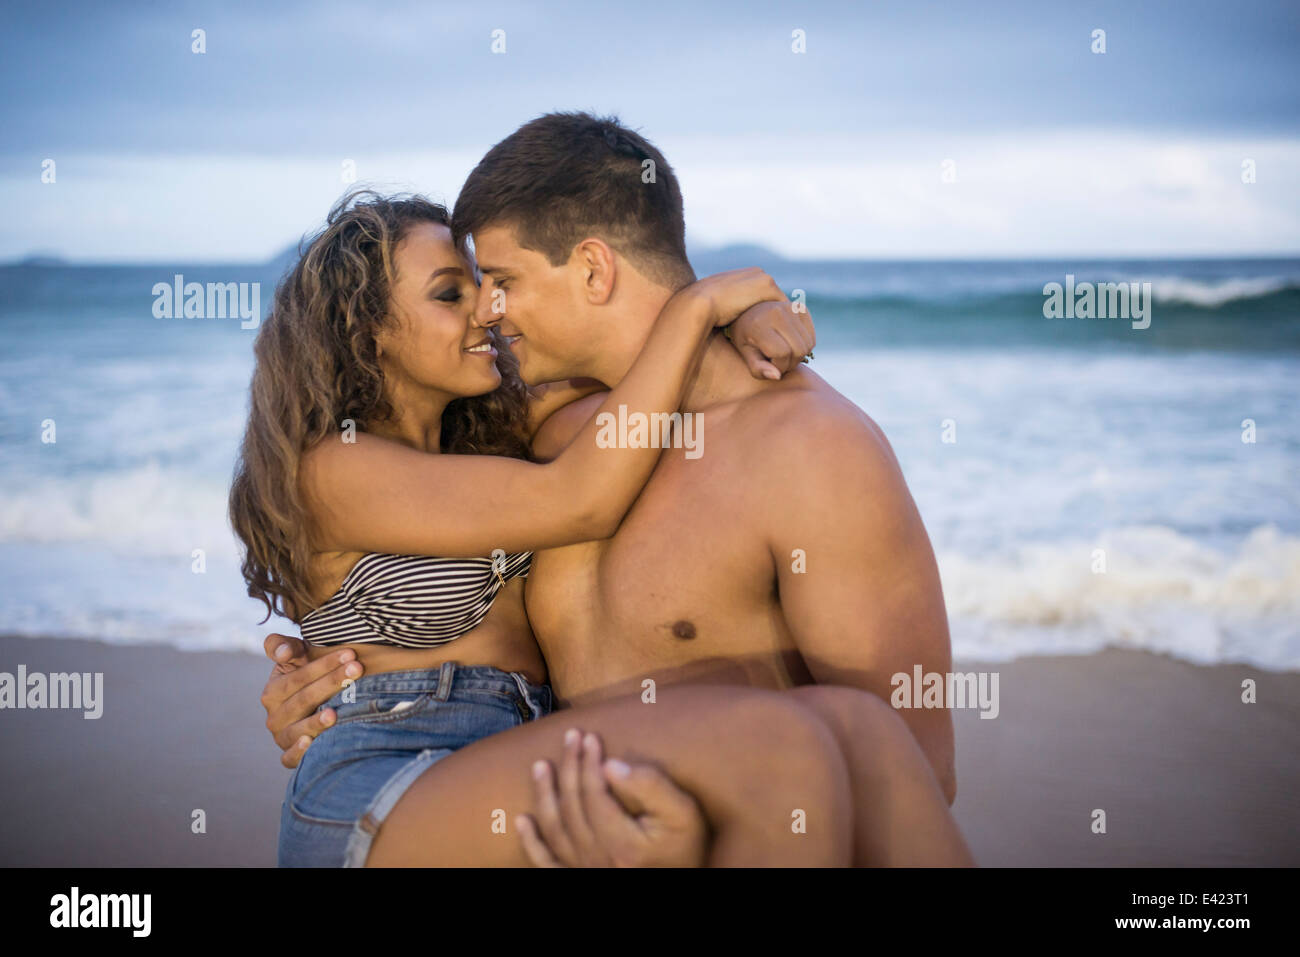 Young man carrying girlfriend in arms on Ipanema Beach, Rio de Janeiro, Brazil - Stock Image